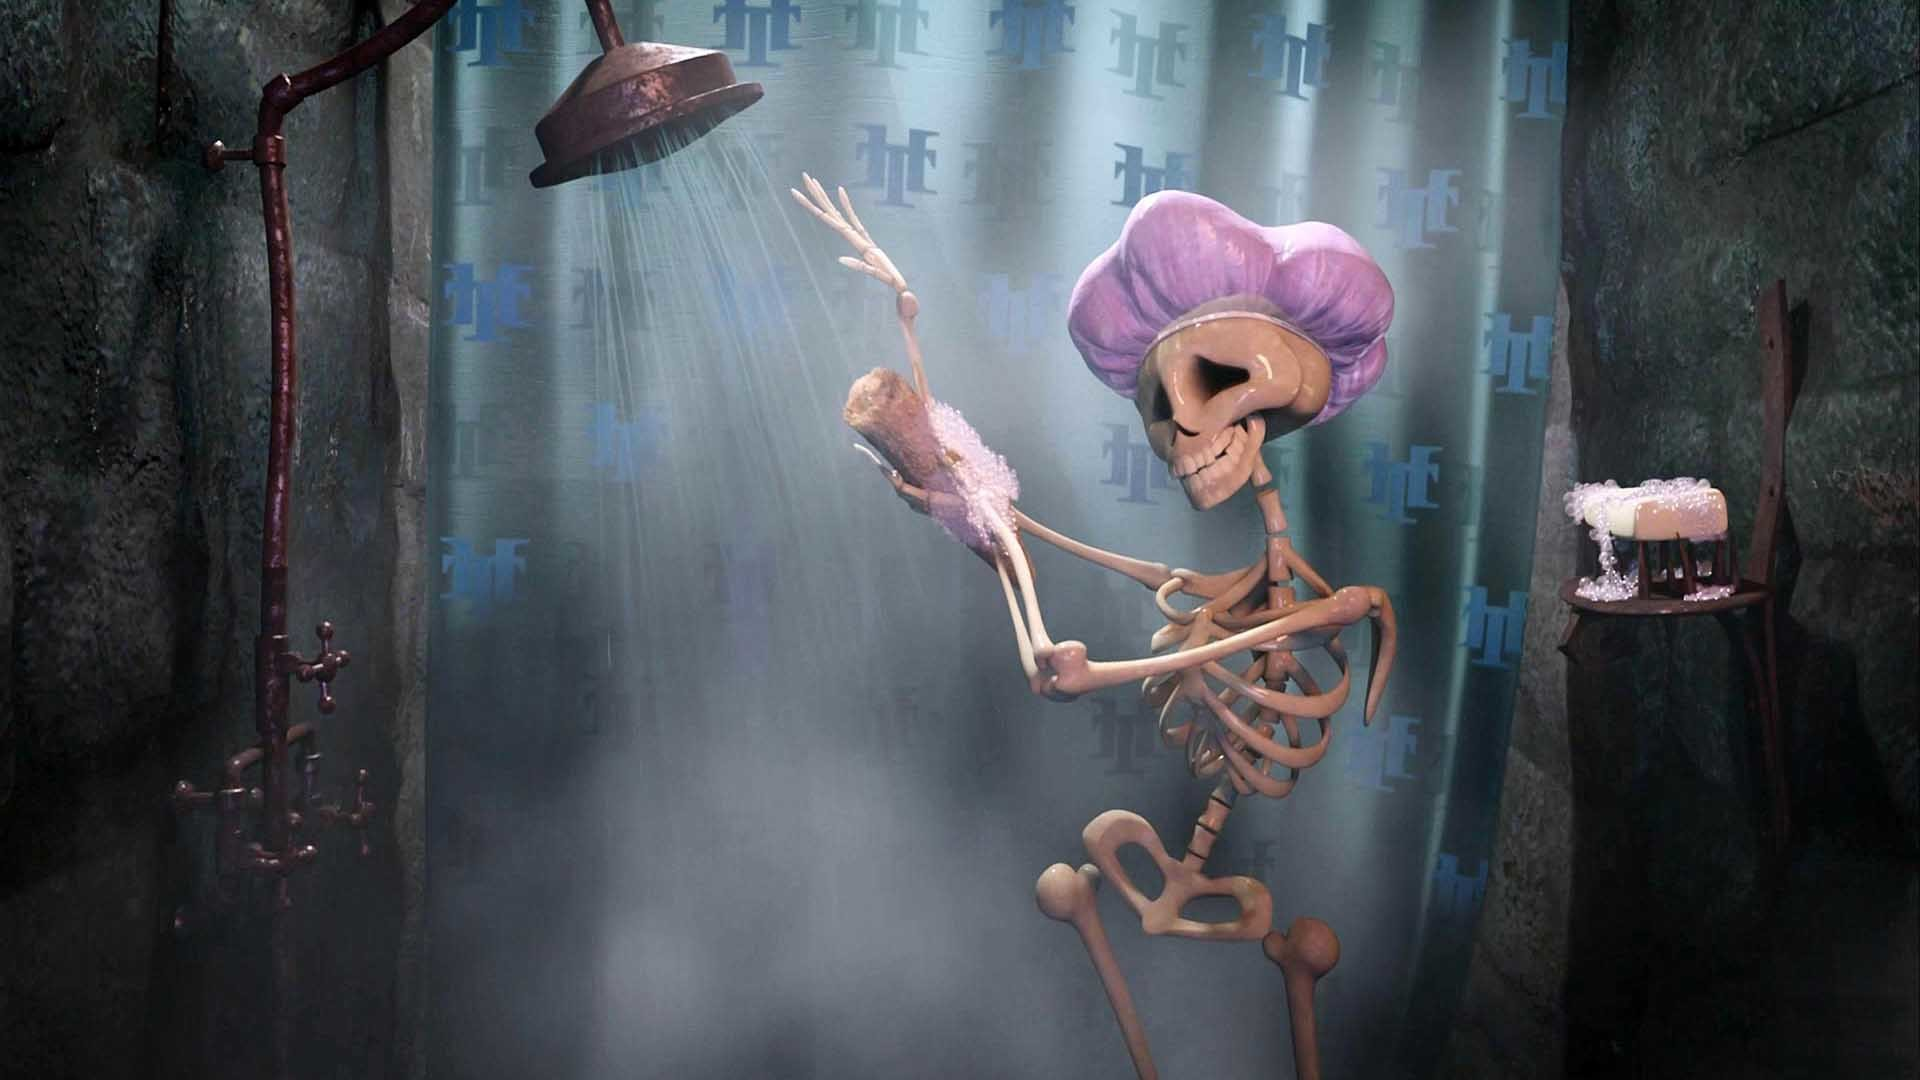 Wonderful 1920x1080 Funny Skeletion Creepy Halloween Wallpaper Full Hd   The